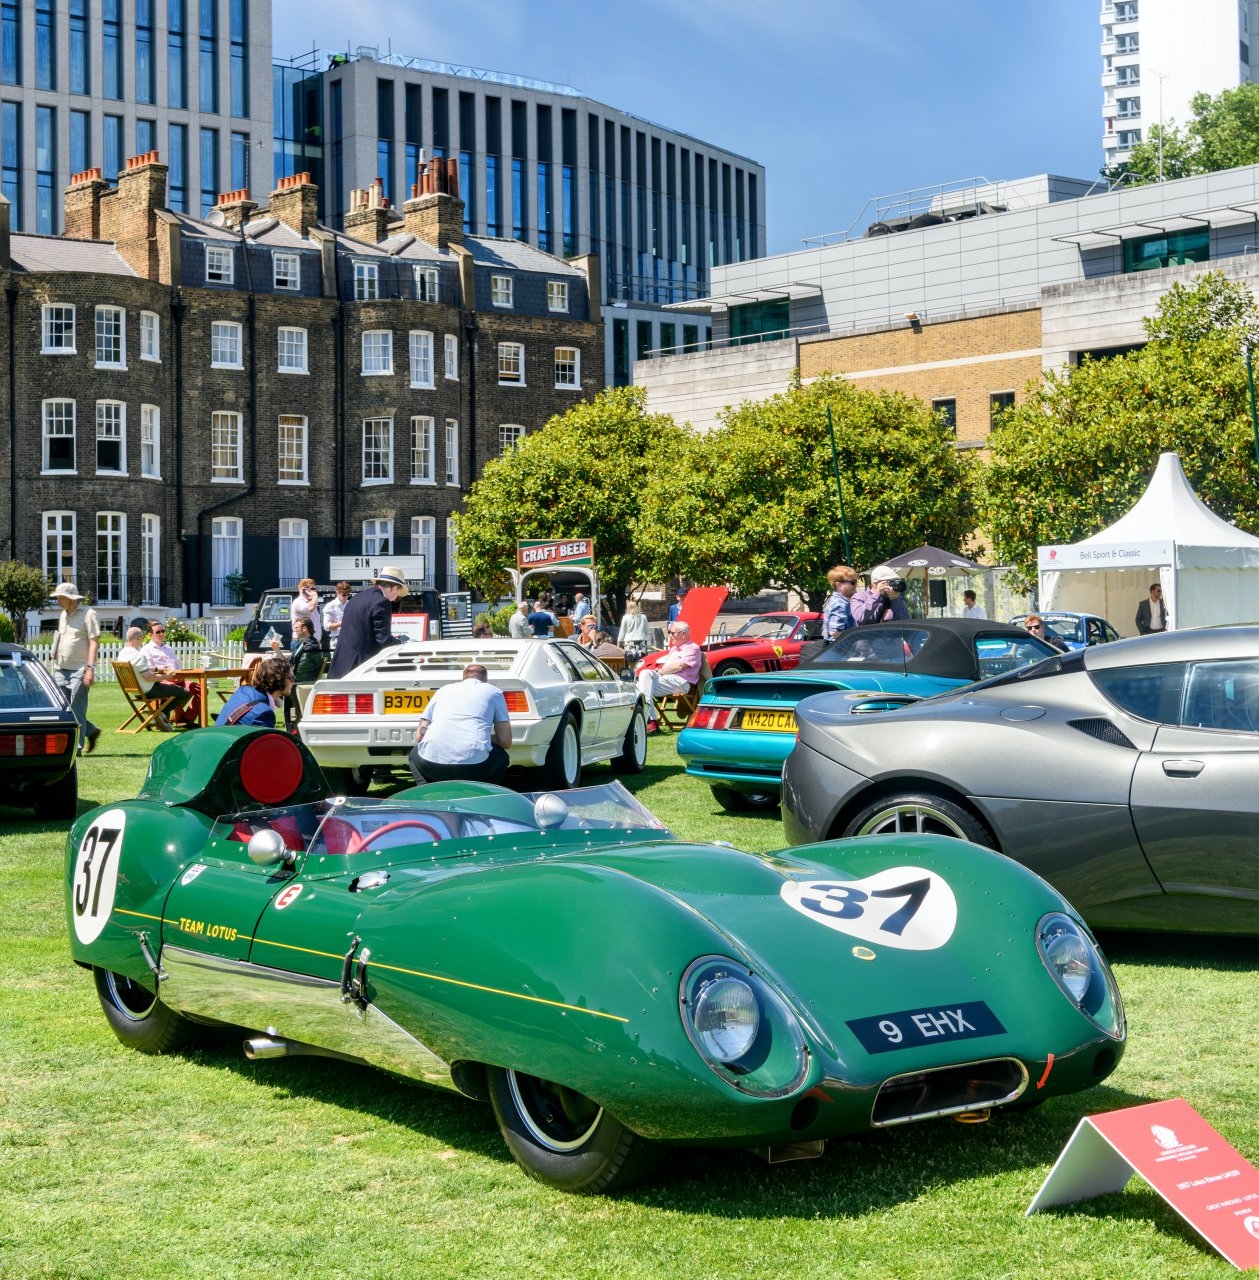 car show, Great idea: Stage a multi-generational road rally, ClassicCars.com Journal